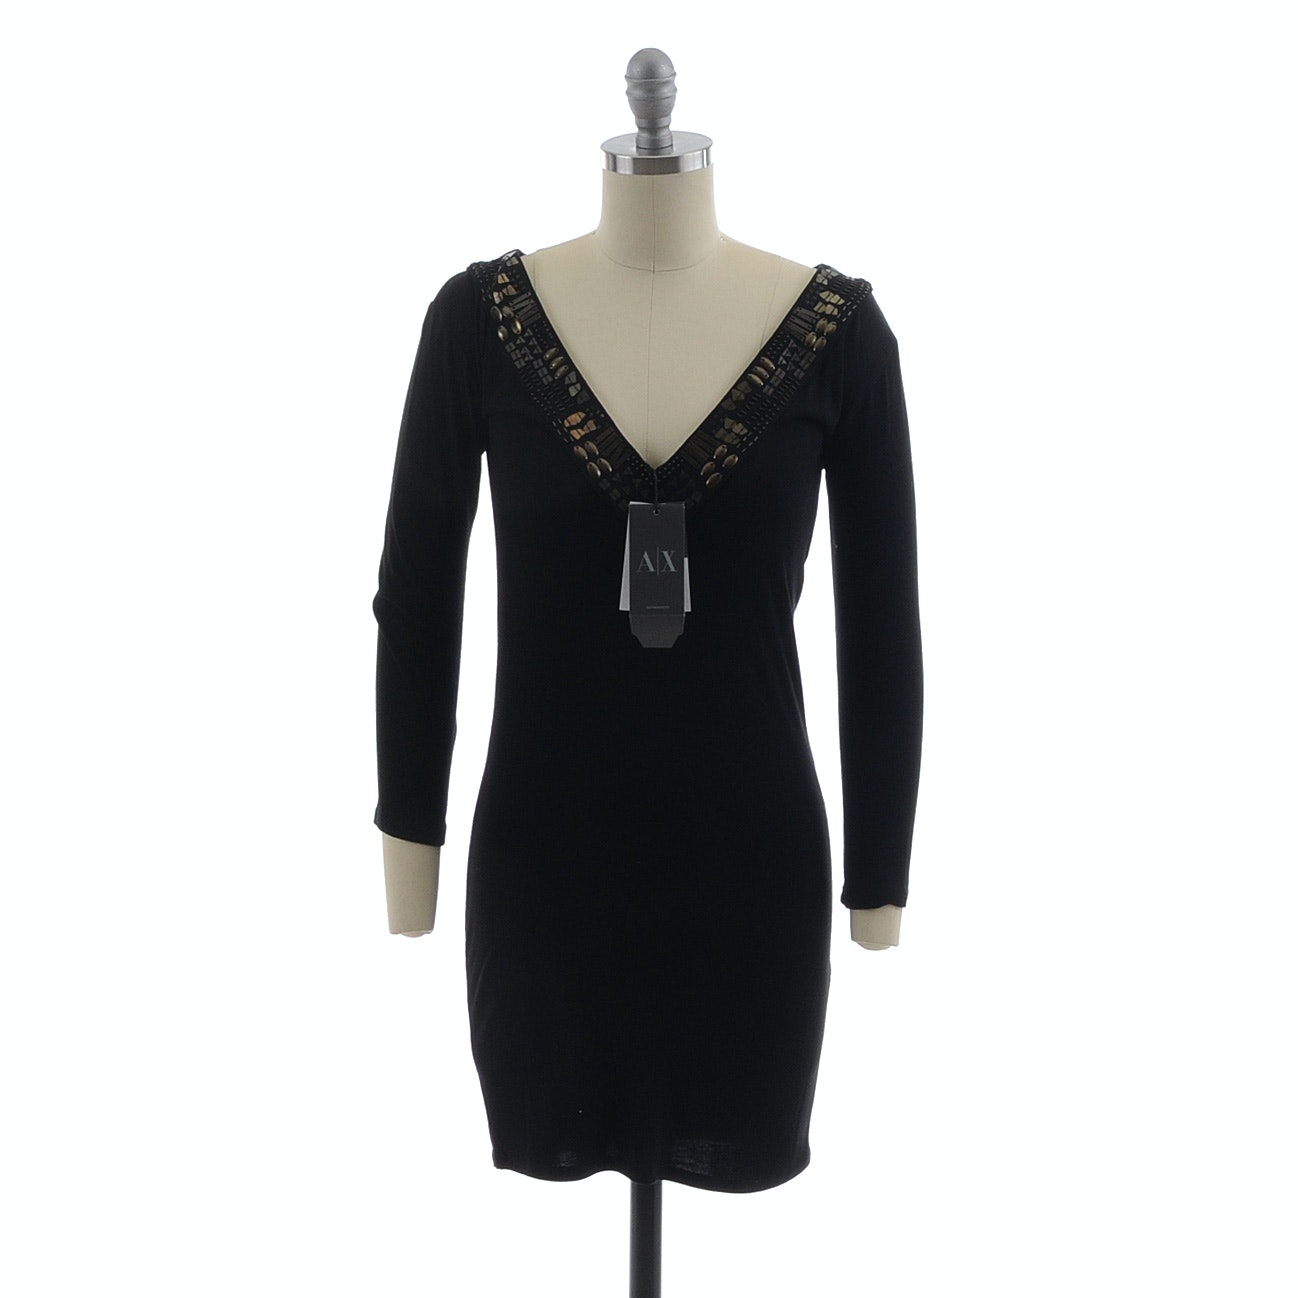 Armani Exchange Reversible Black Cocktail Dress, New With Tags